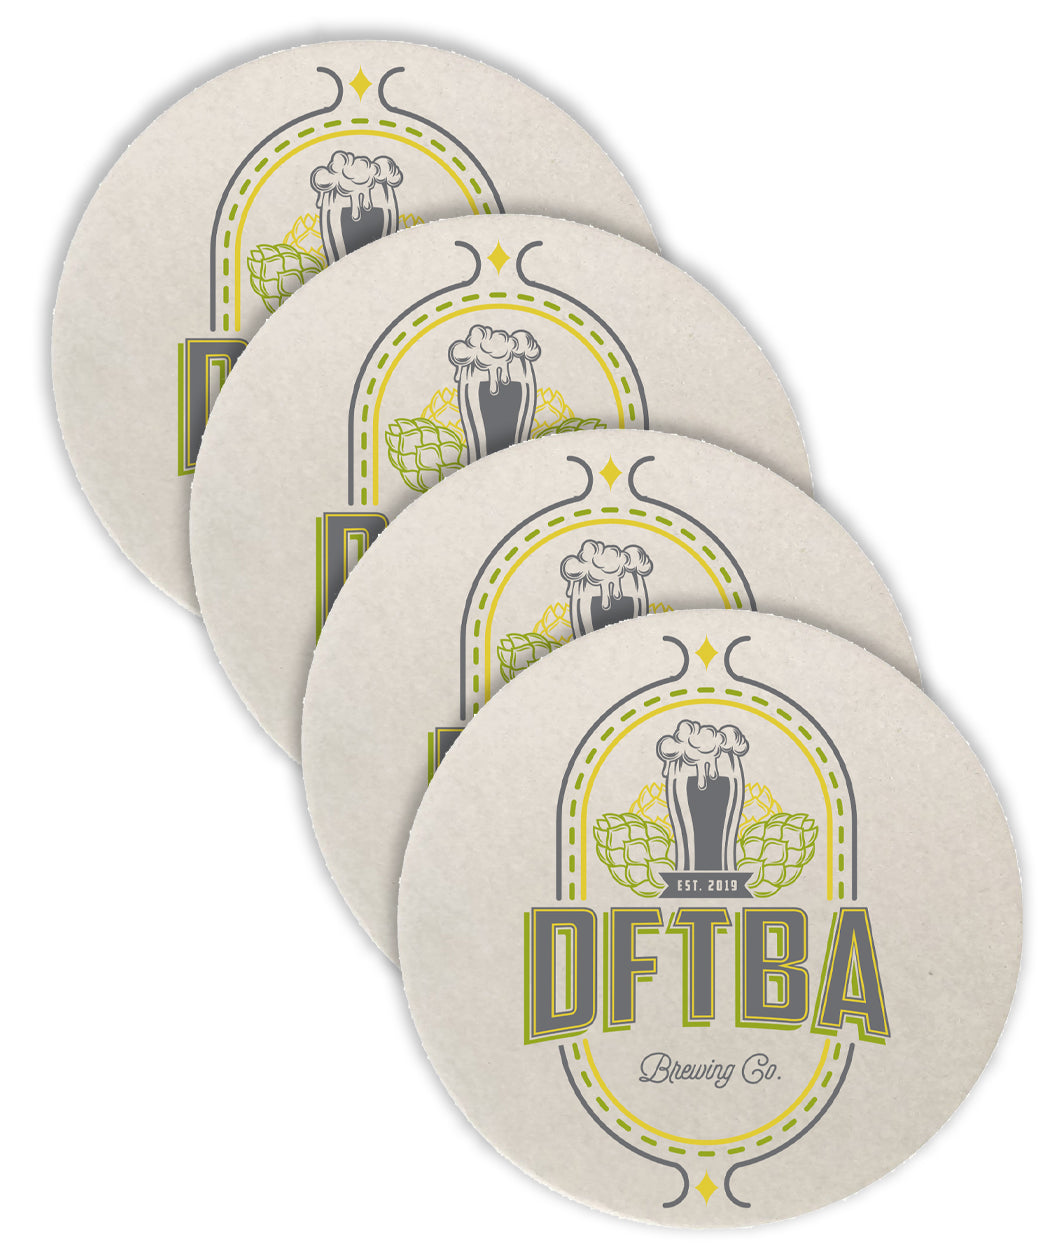 DFTBA Brewing Co. Four Coaster Set